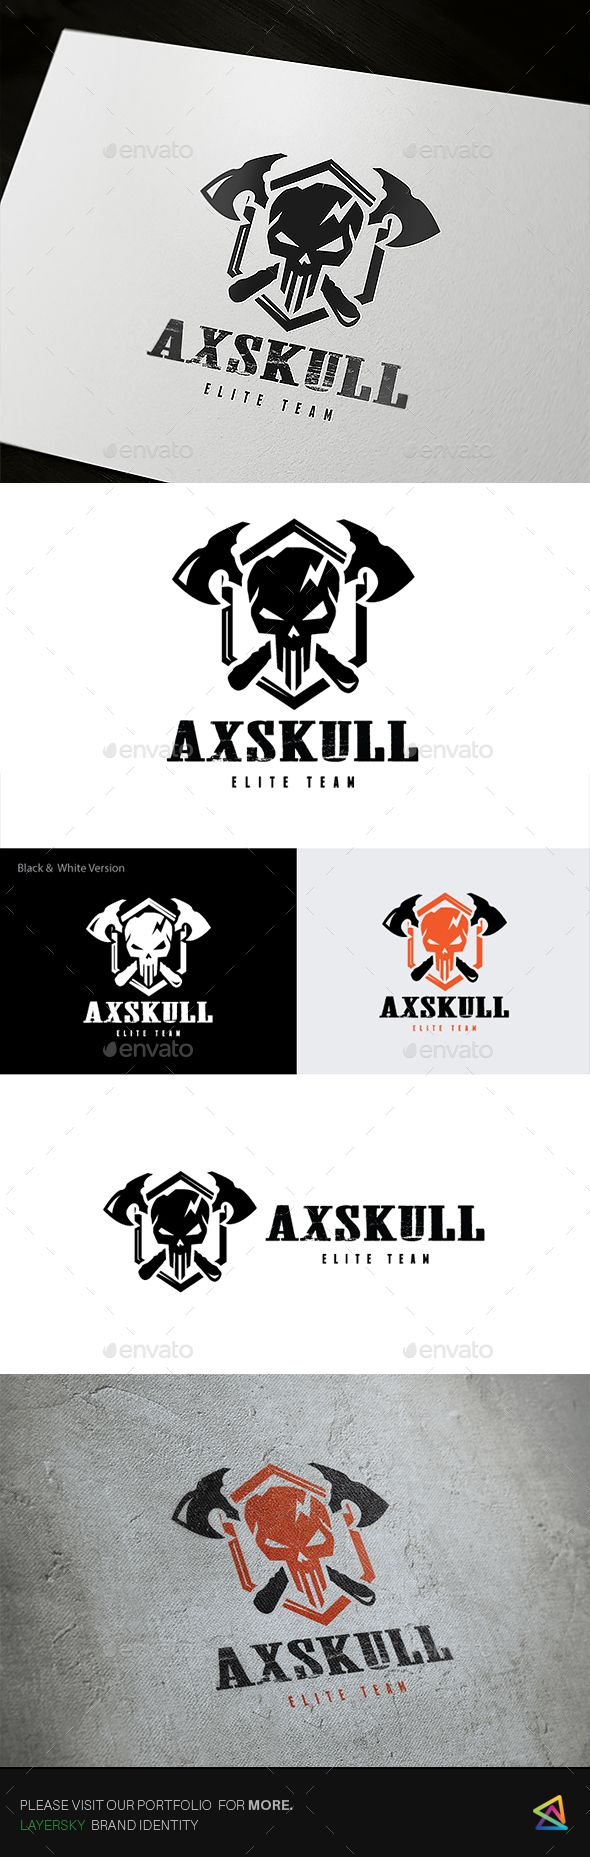 Best Skull Logo Ideas On Pinterest Skull Icon Skull Design - Artist unbrands famous corporate logos to give them hilarious new meanings